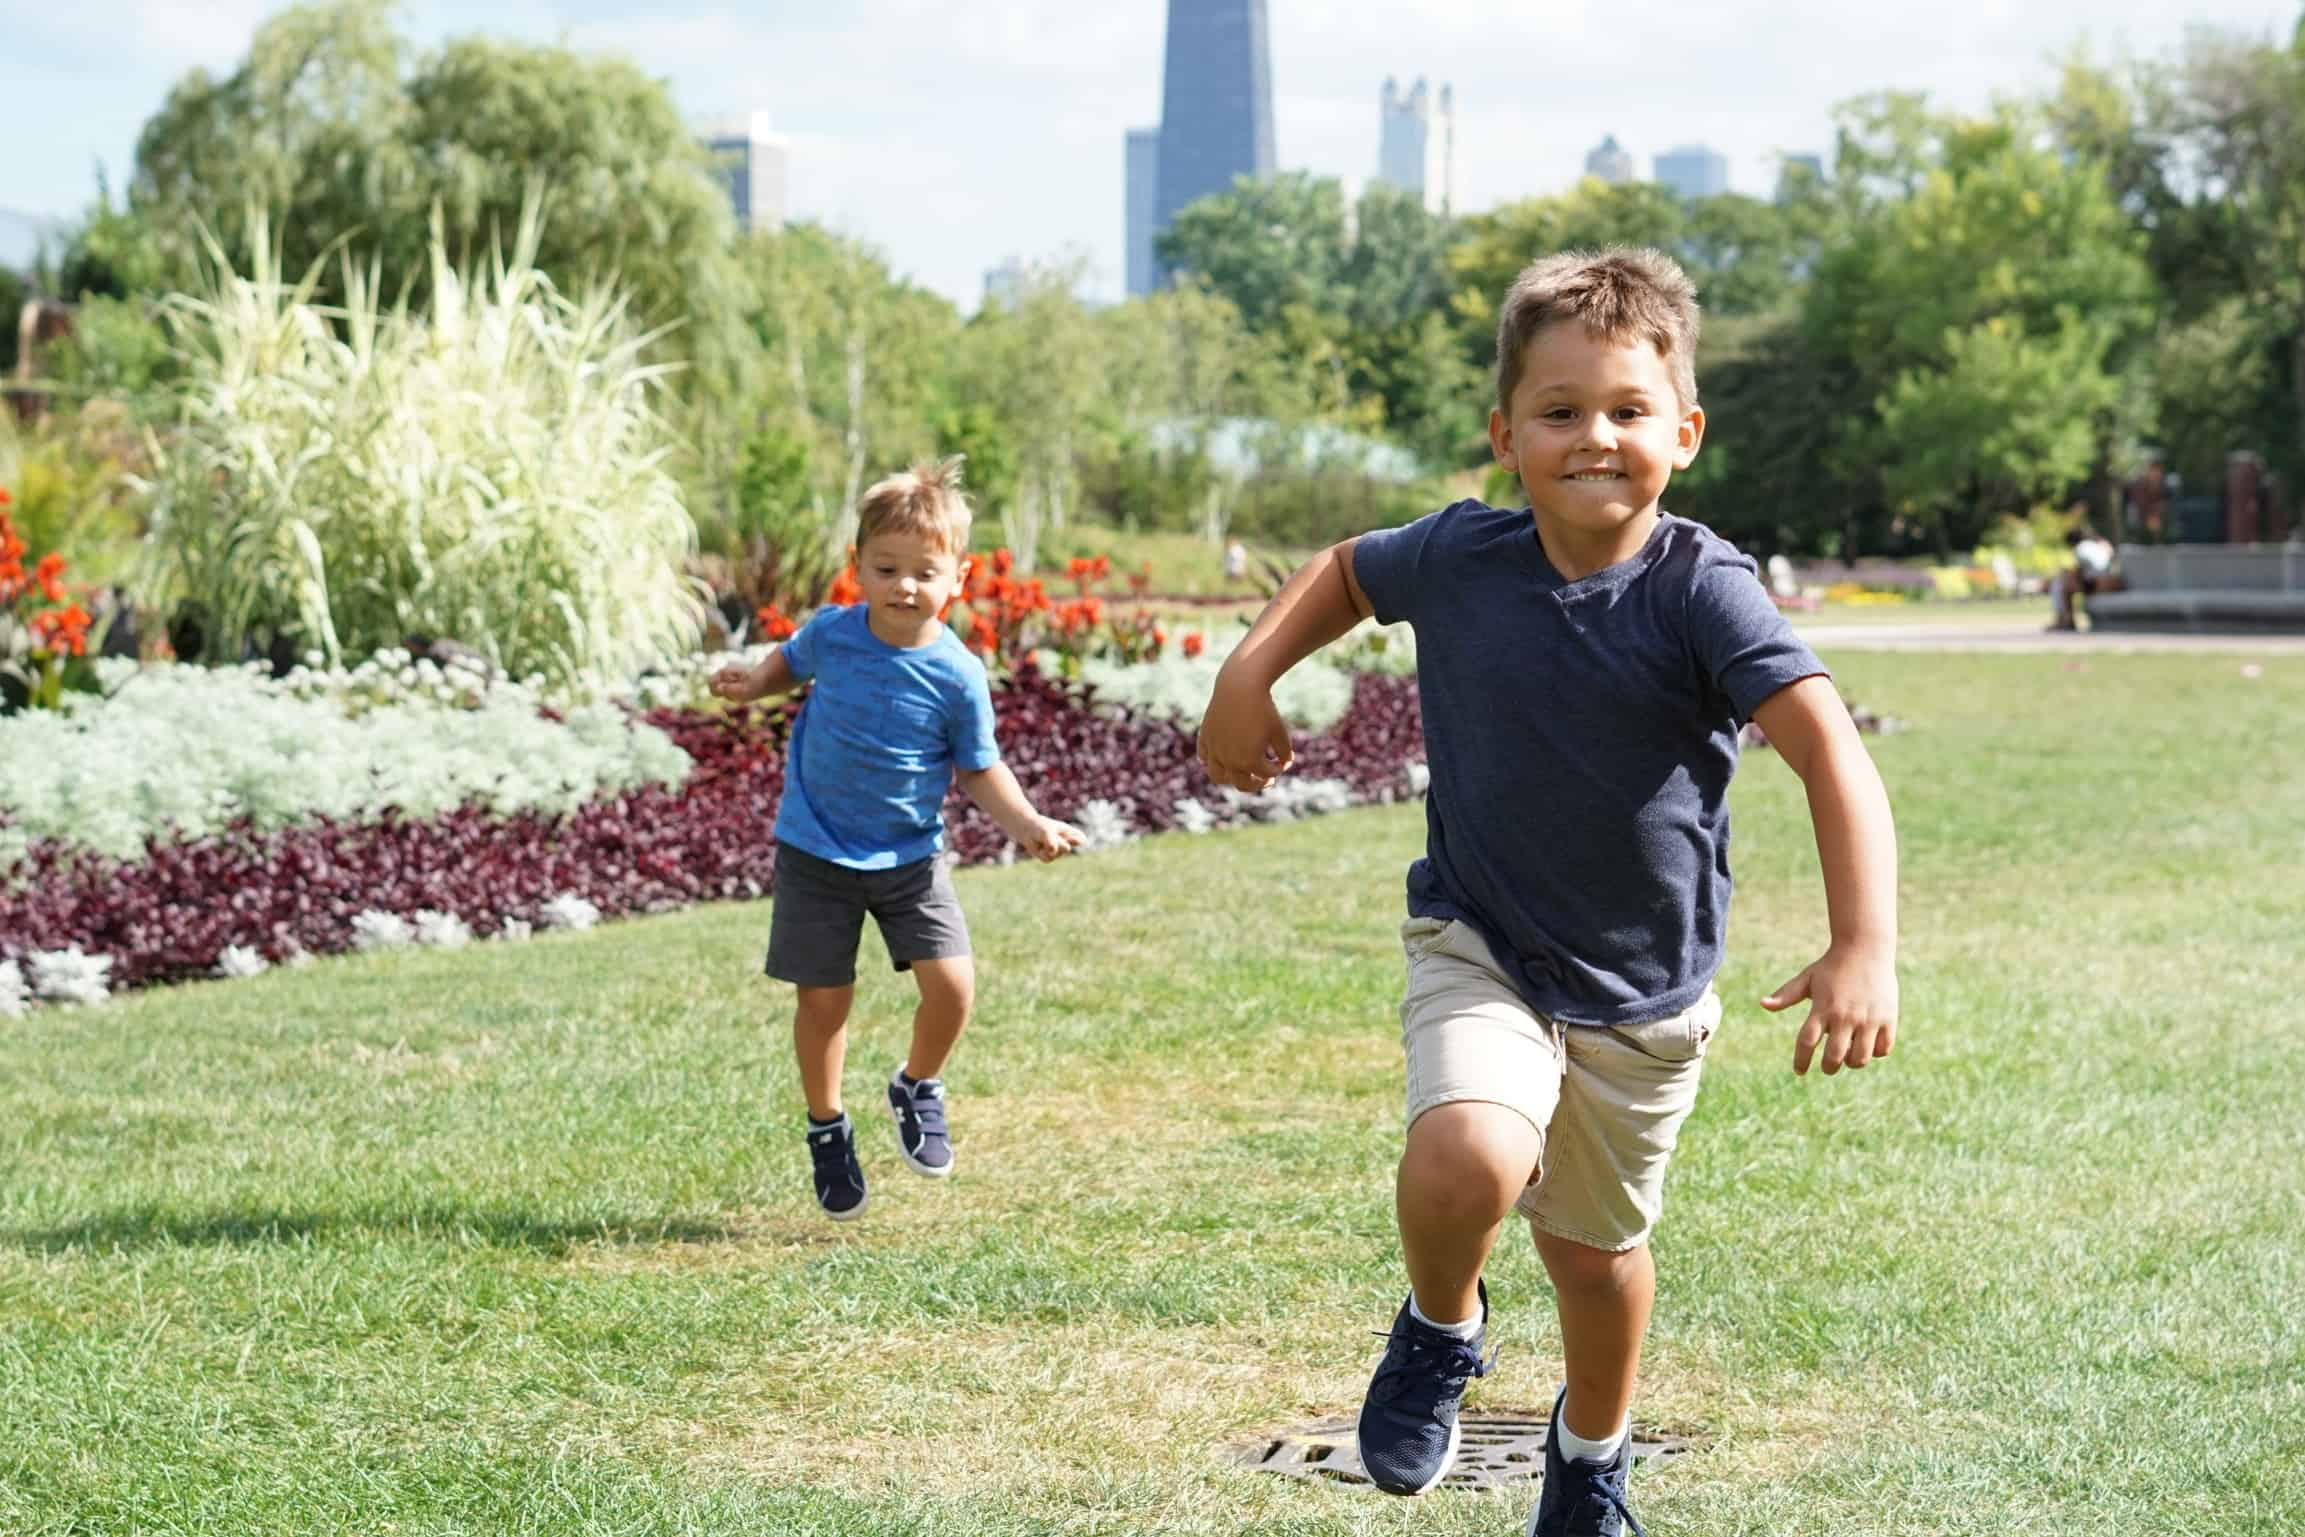 Tulsa Activities for Kids